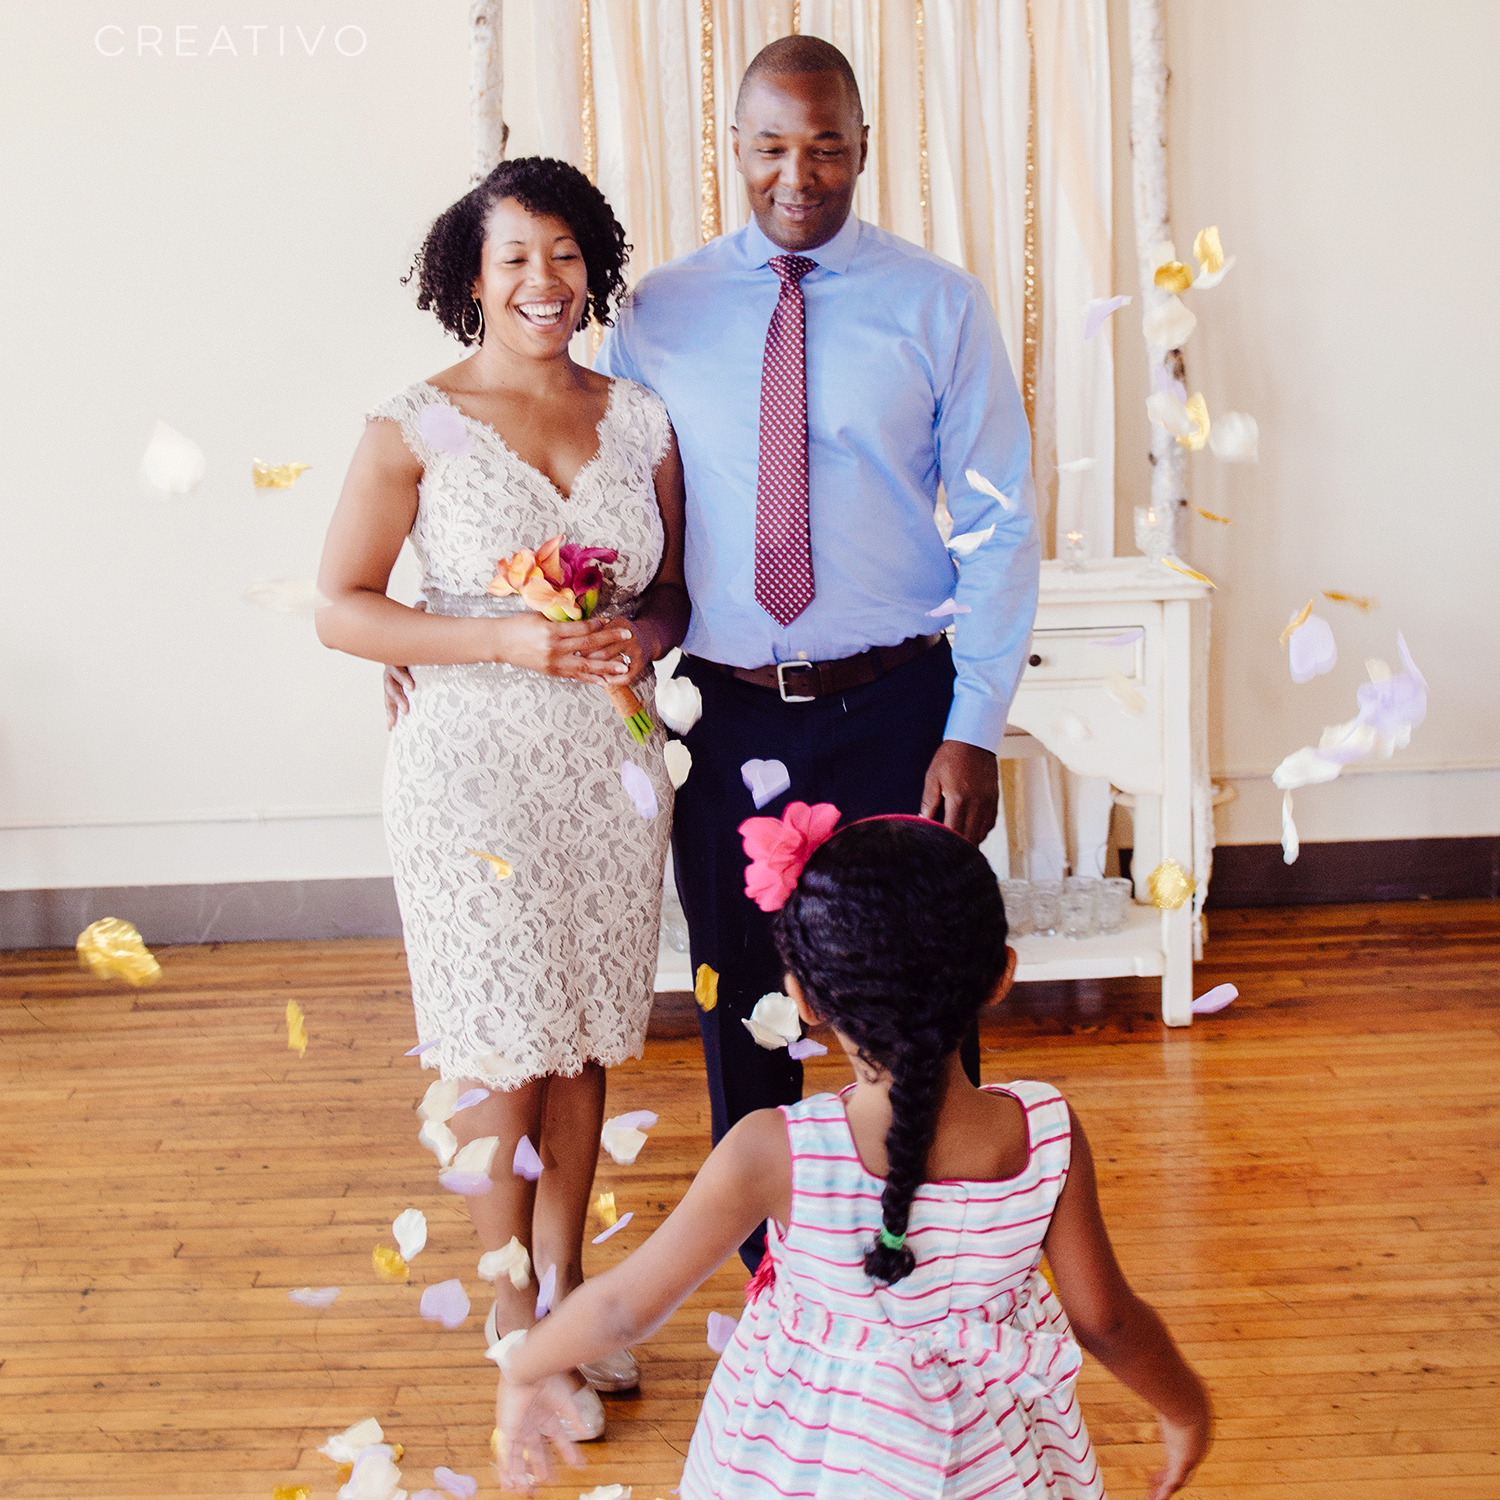 10. Chicago elopement with your child and flower petals